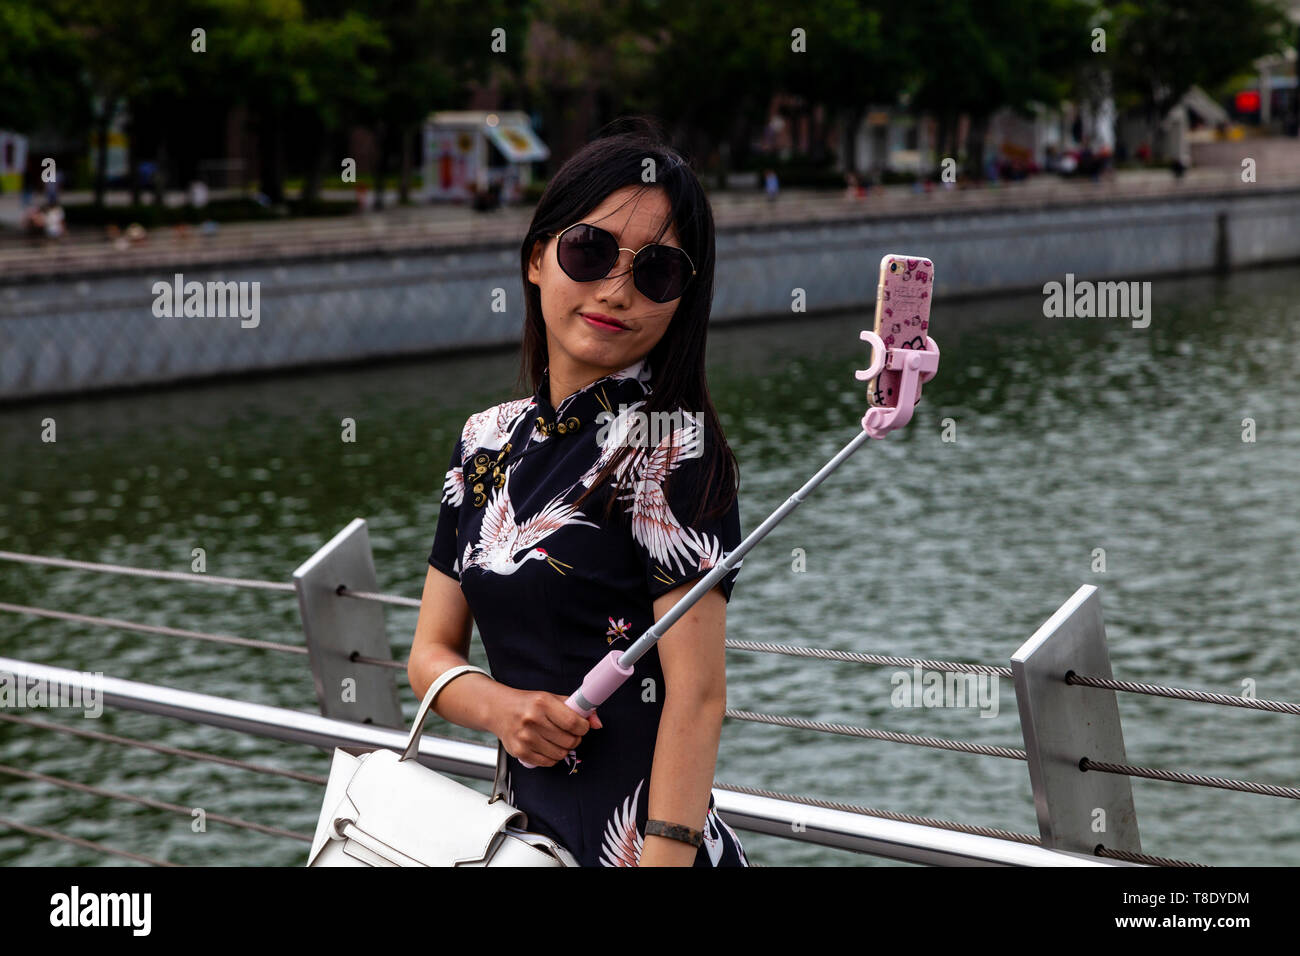 A Young Female Tourist Taking A Selfie, Singapore, South East Asia - Stock Image